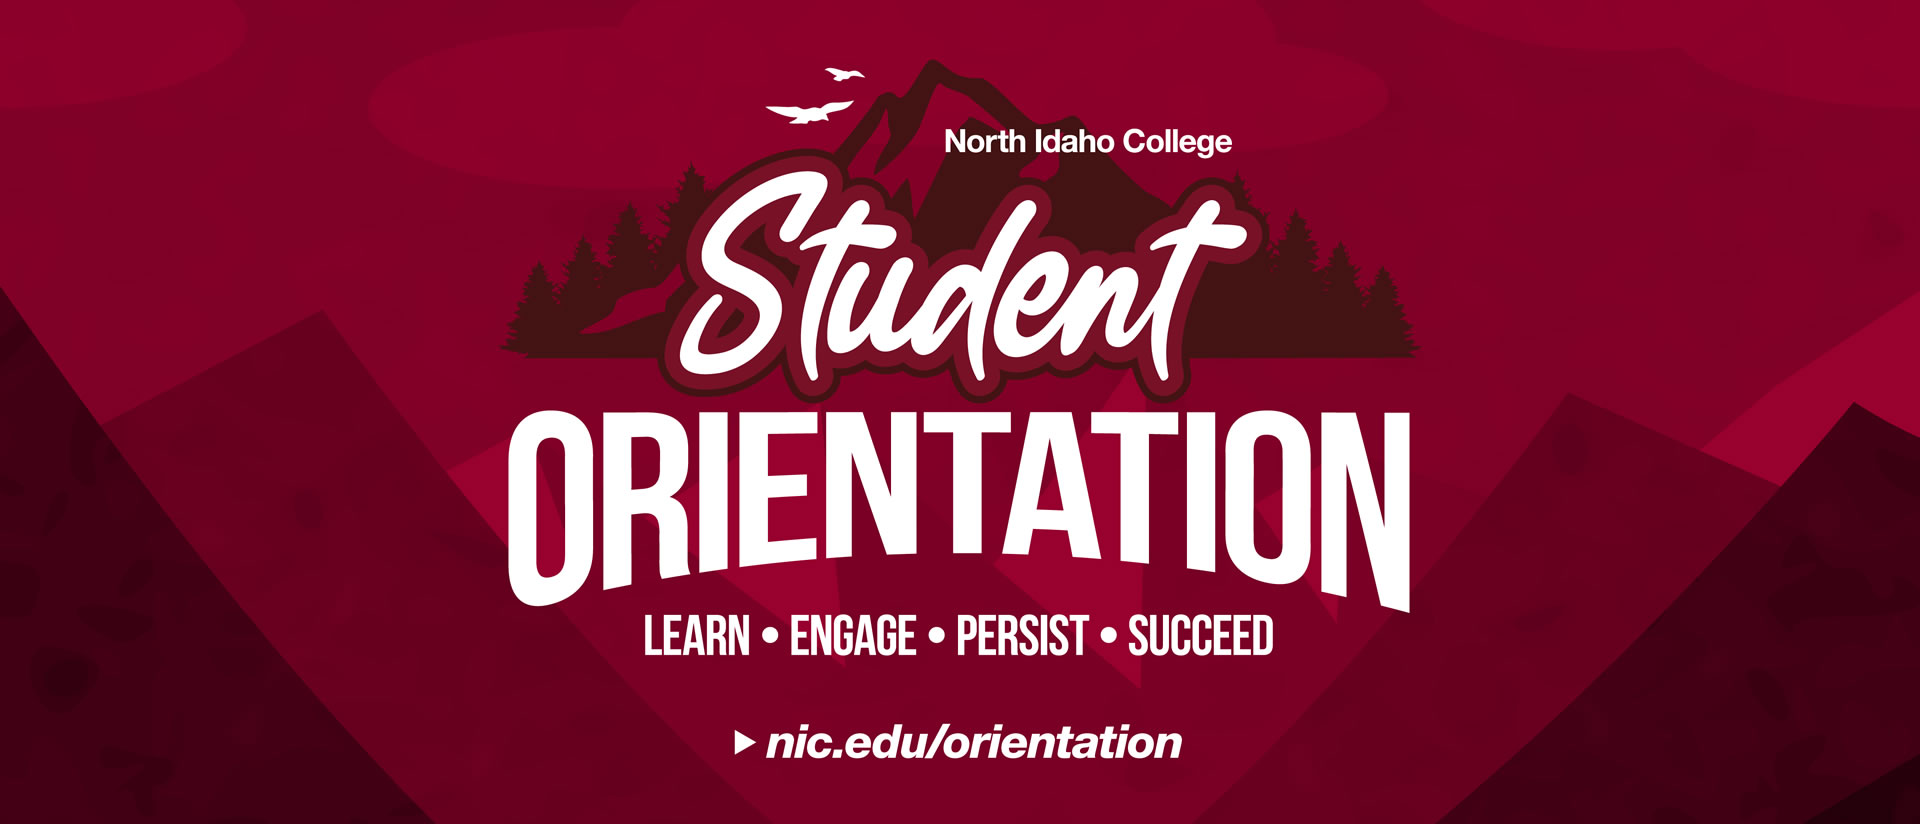 Student Orientation - learn, engage, persist, succeed